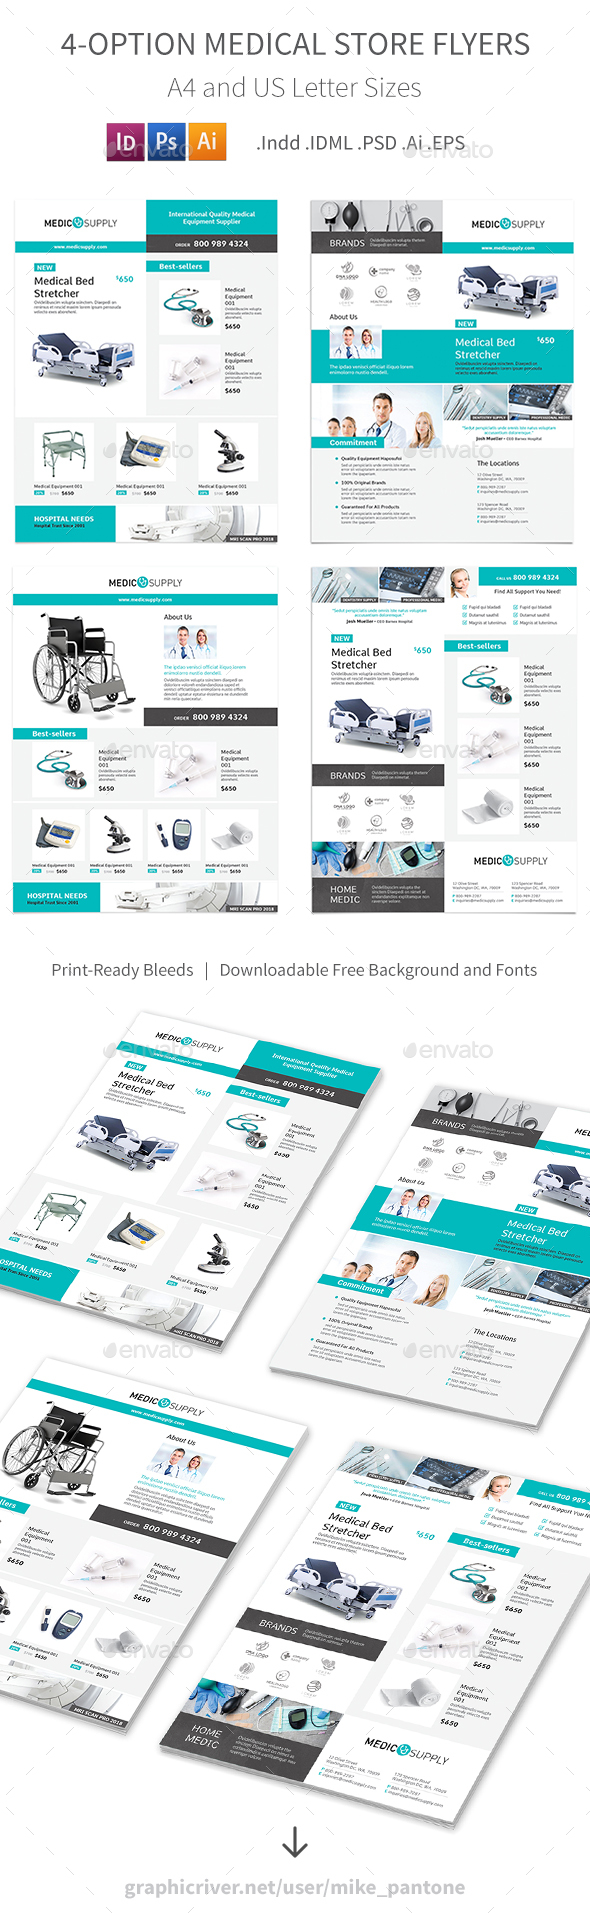 Medical Store Flyers – 4 Options - Commerce Flyers